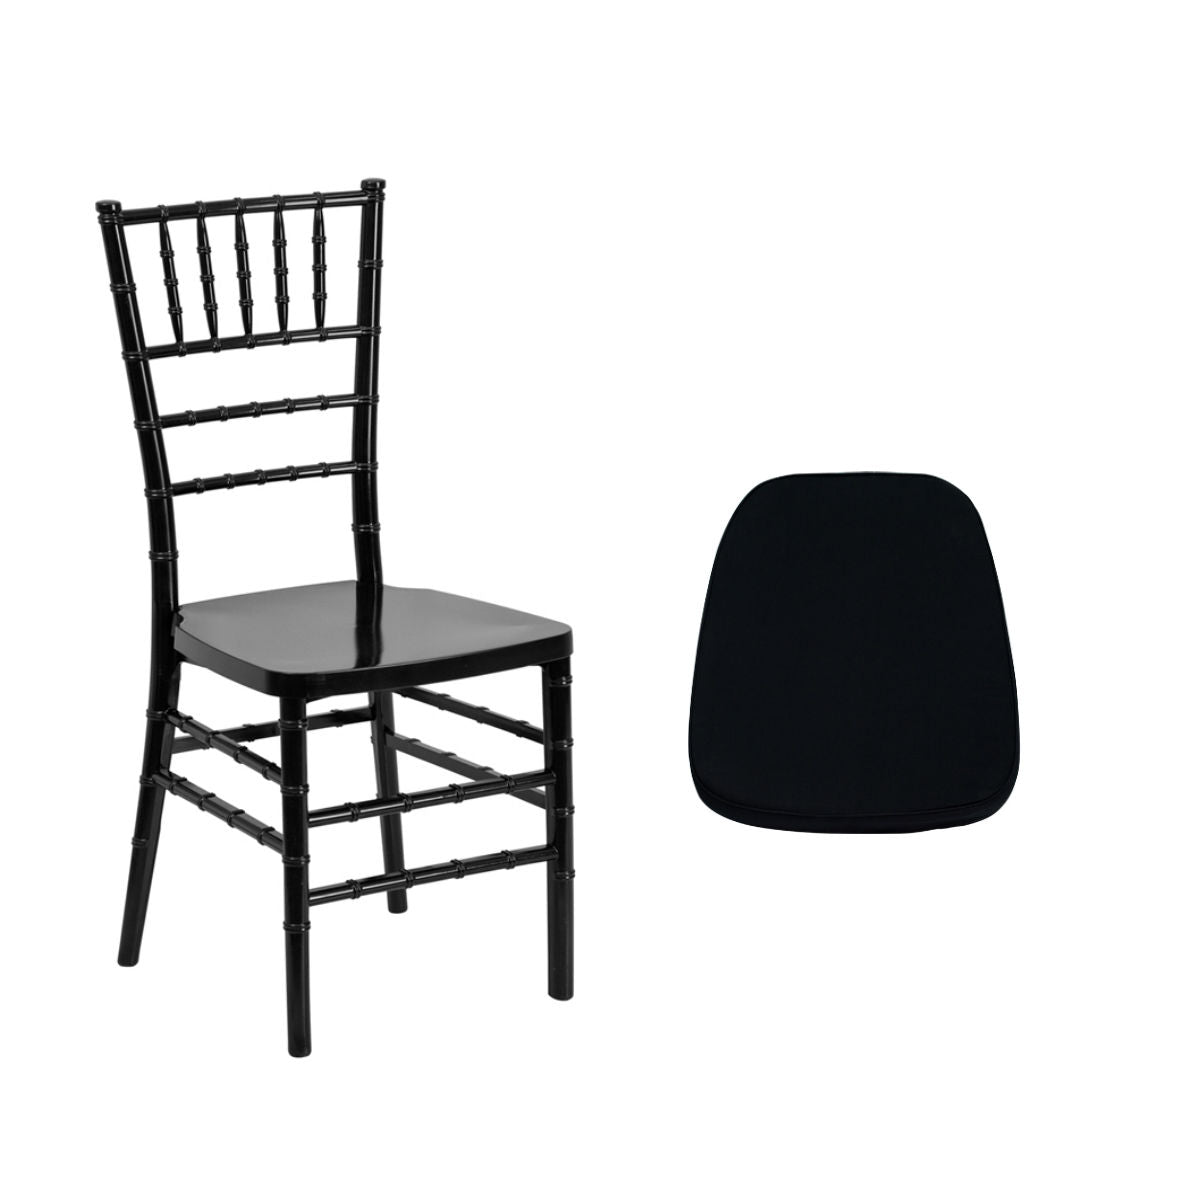 Flash Furniture HERCULES PREMIUM Series Black Resin Stacking Chiavari Chair with Soft Black Fabric Chiavari Chair Cushion